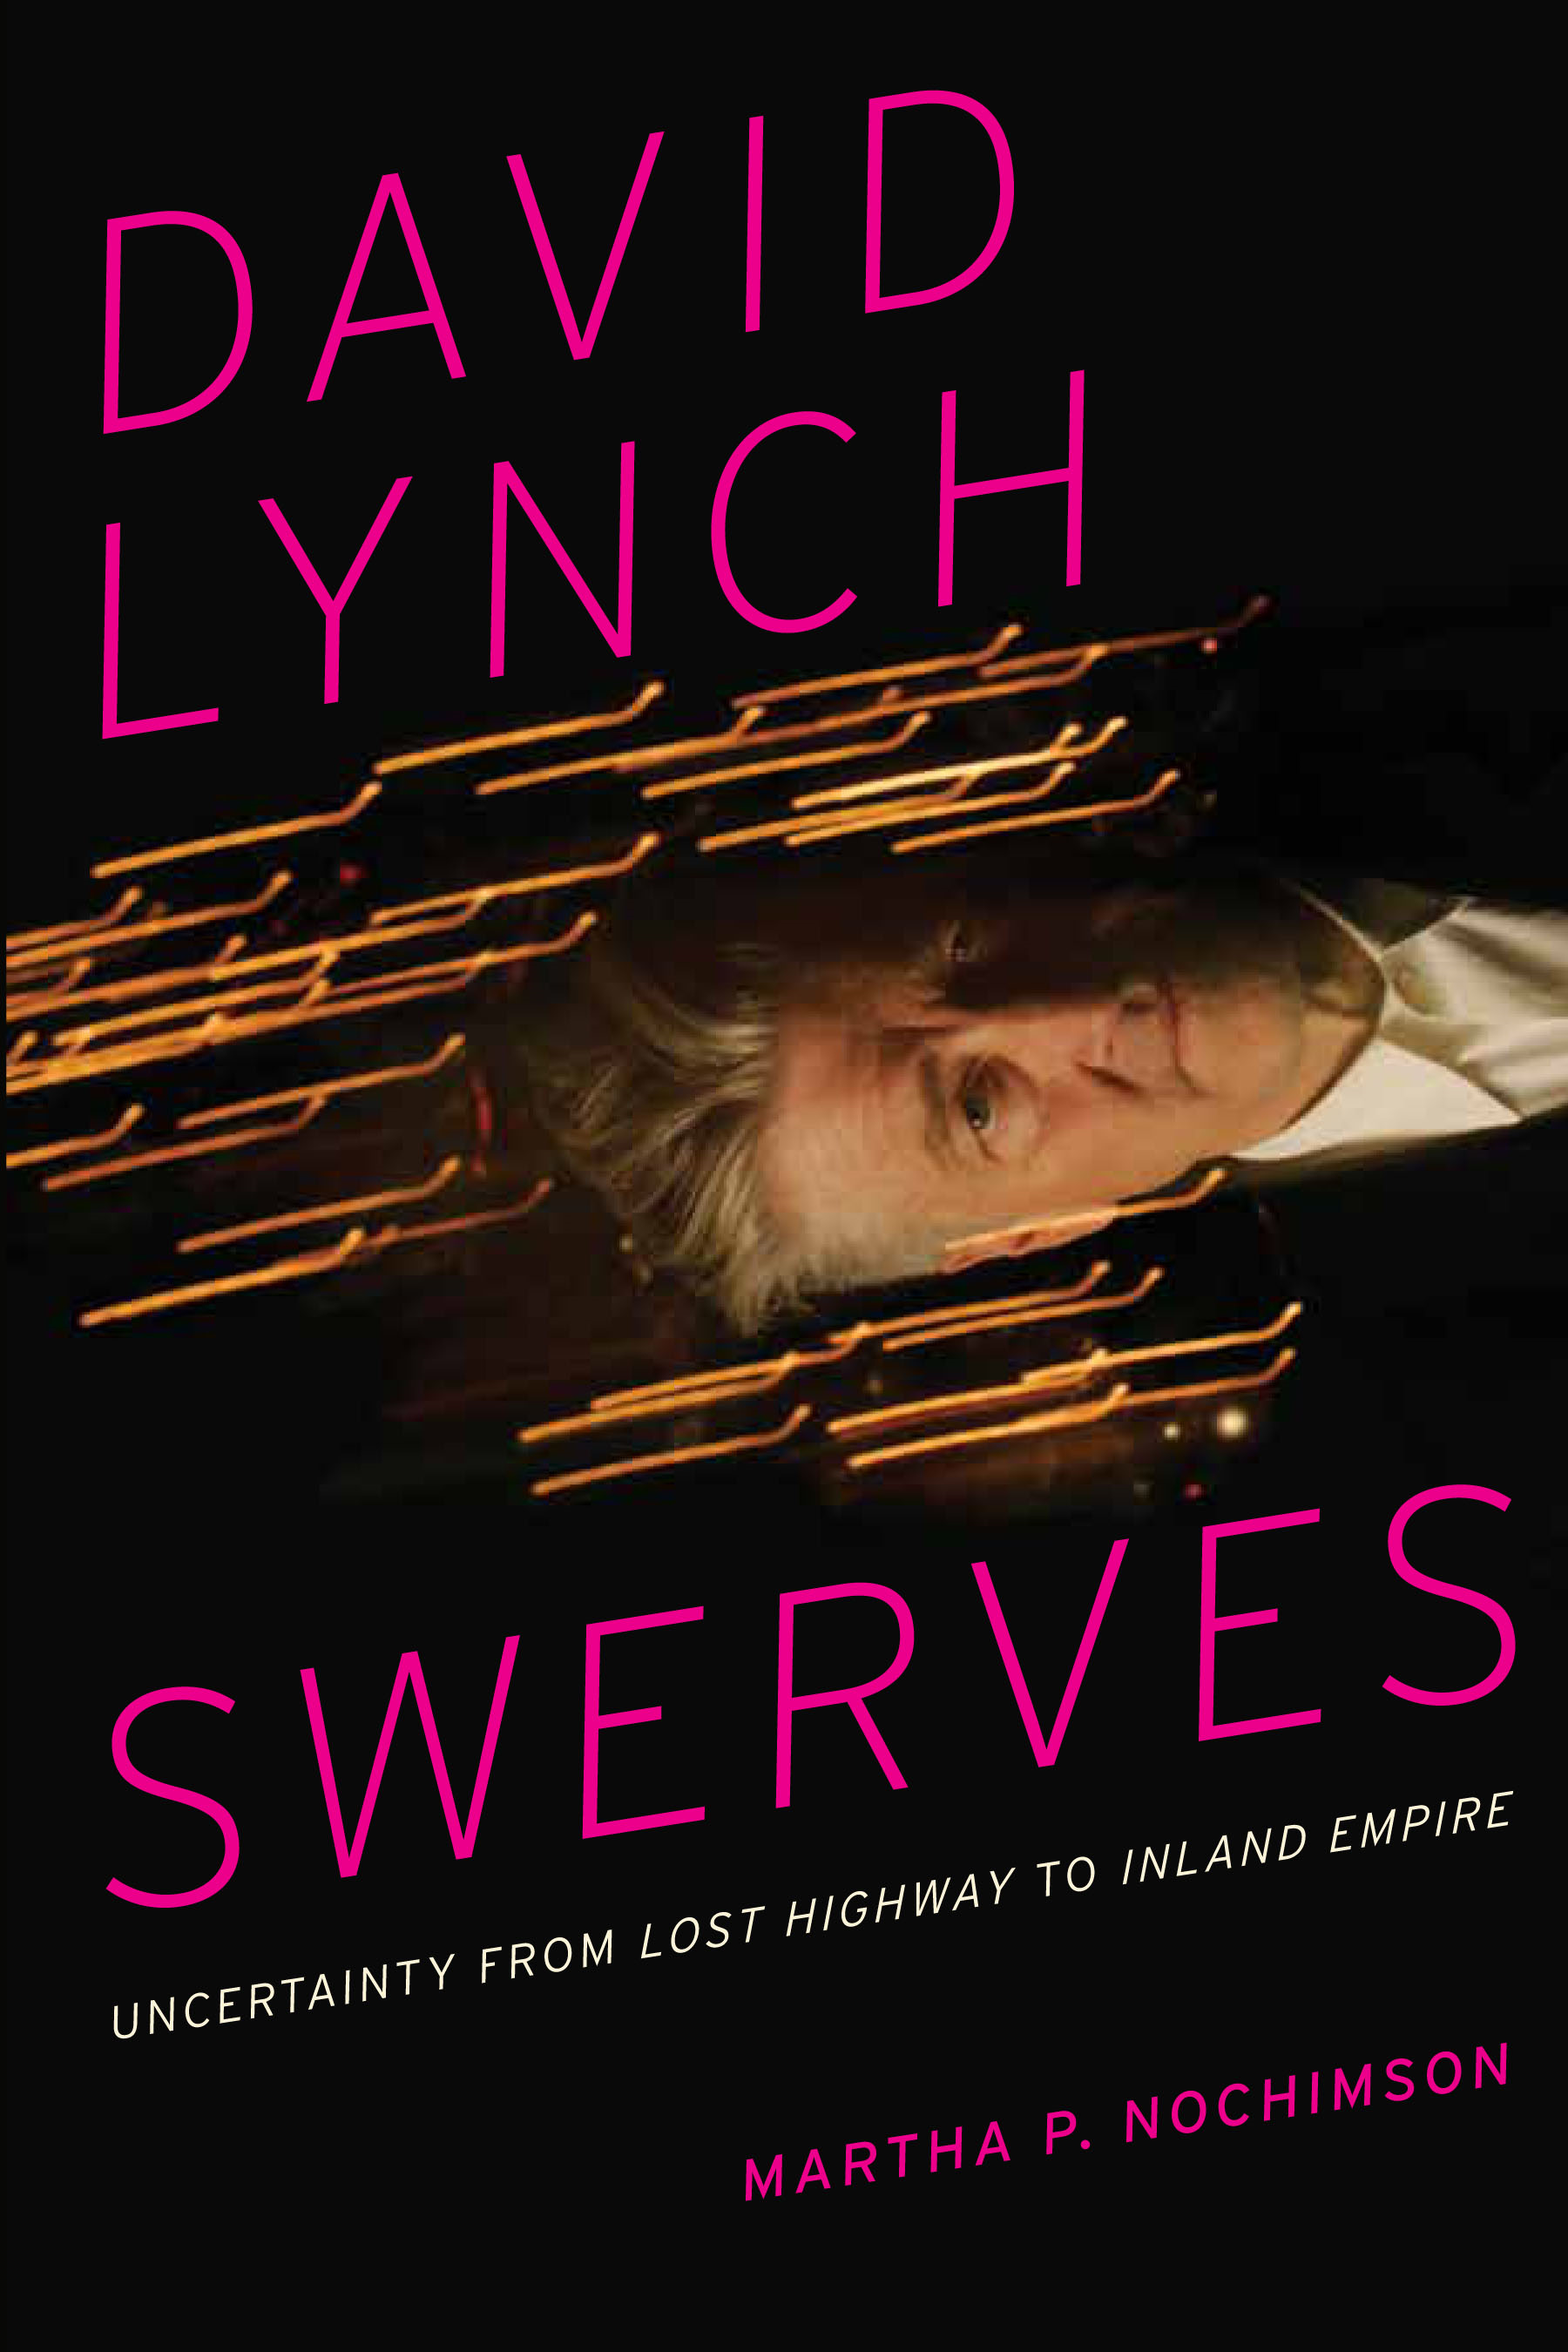 David Lynch Swerves